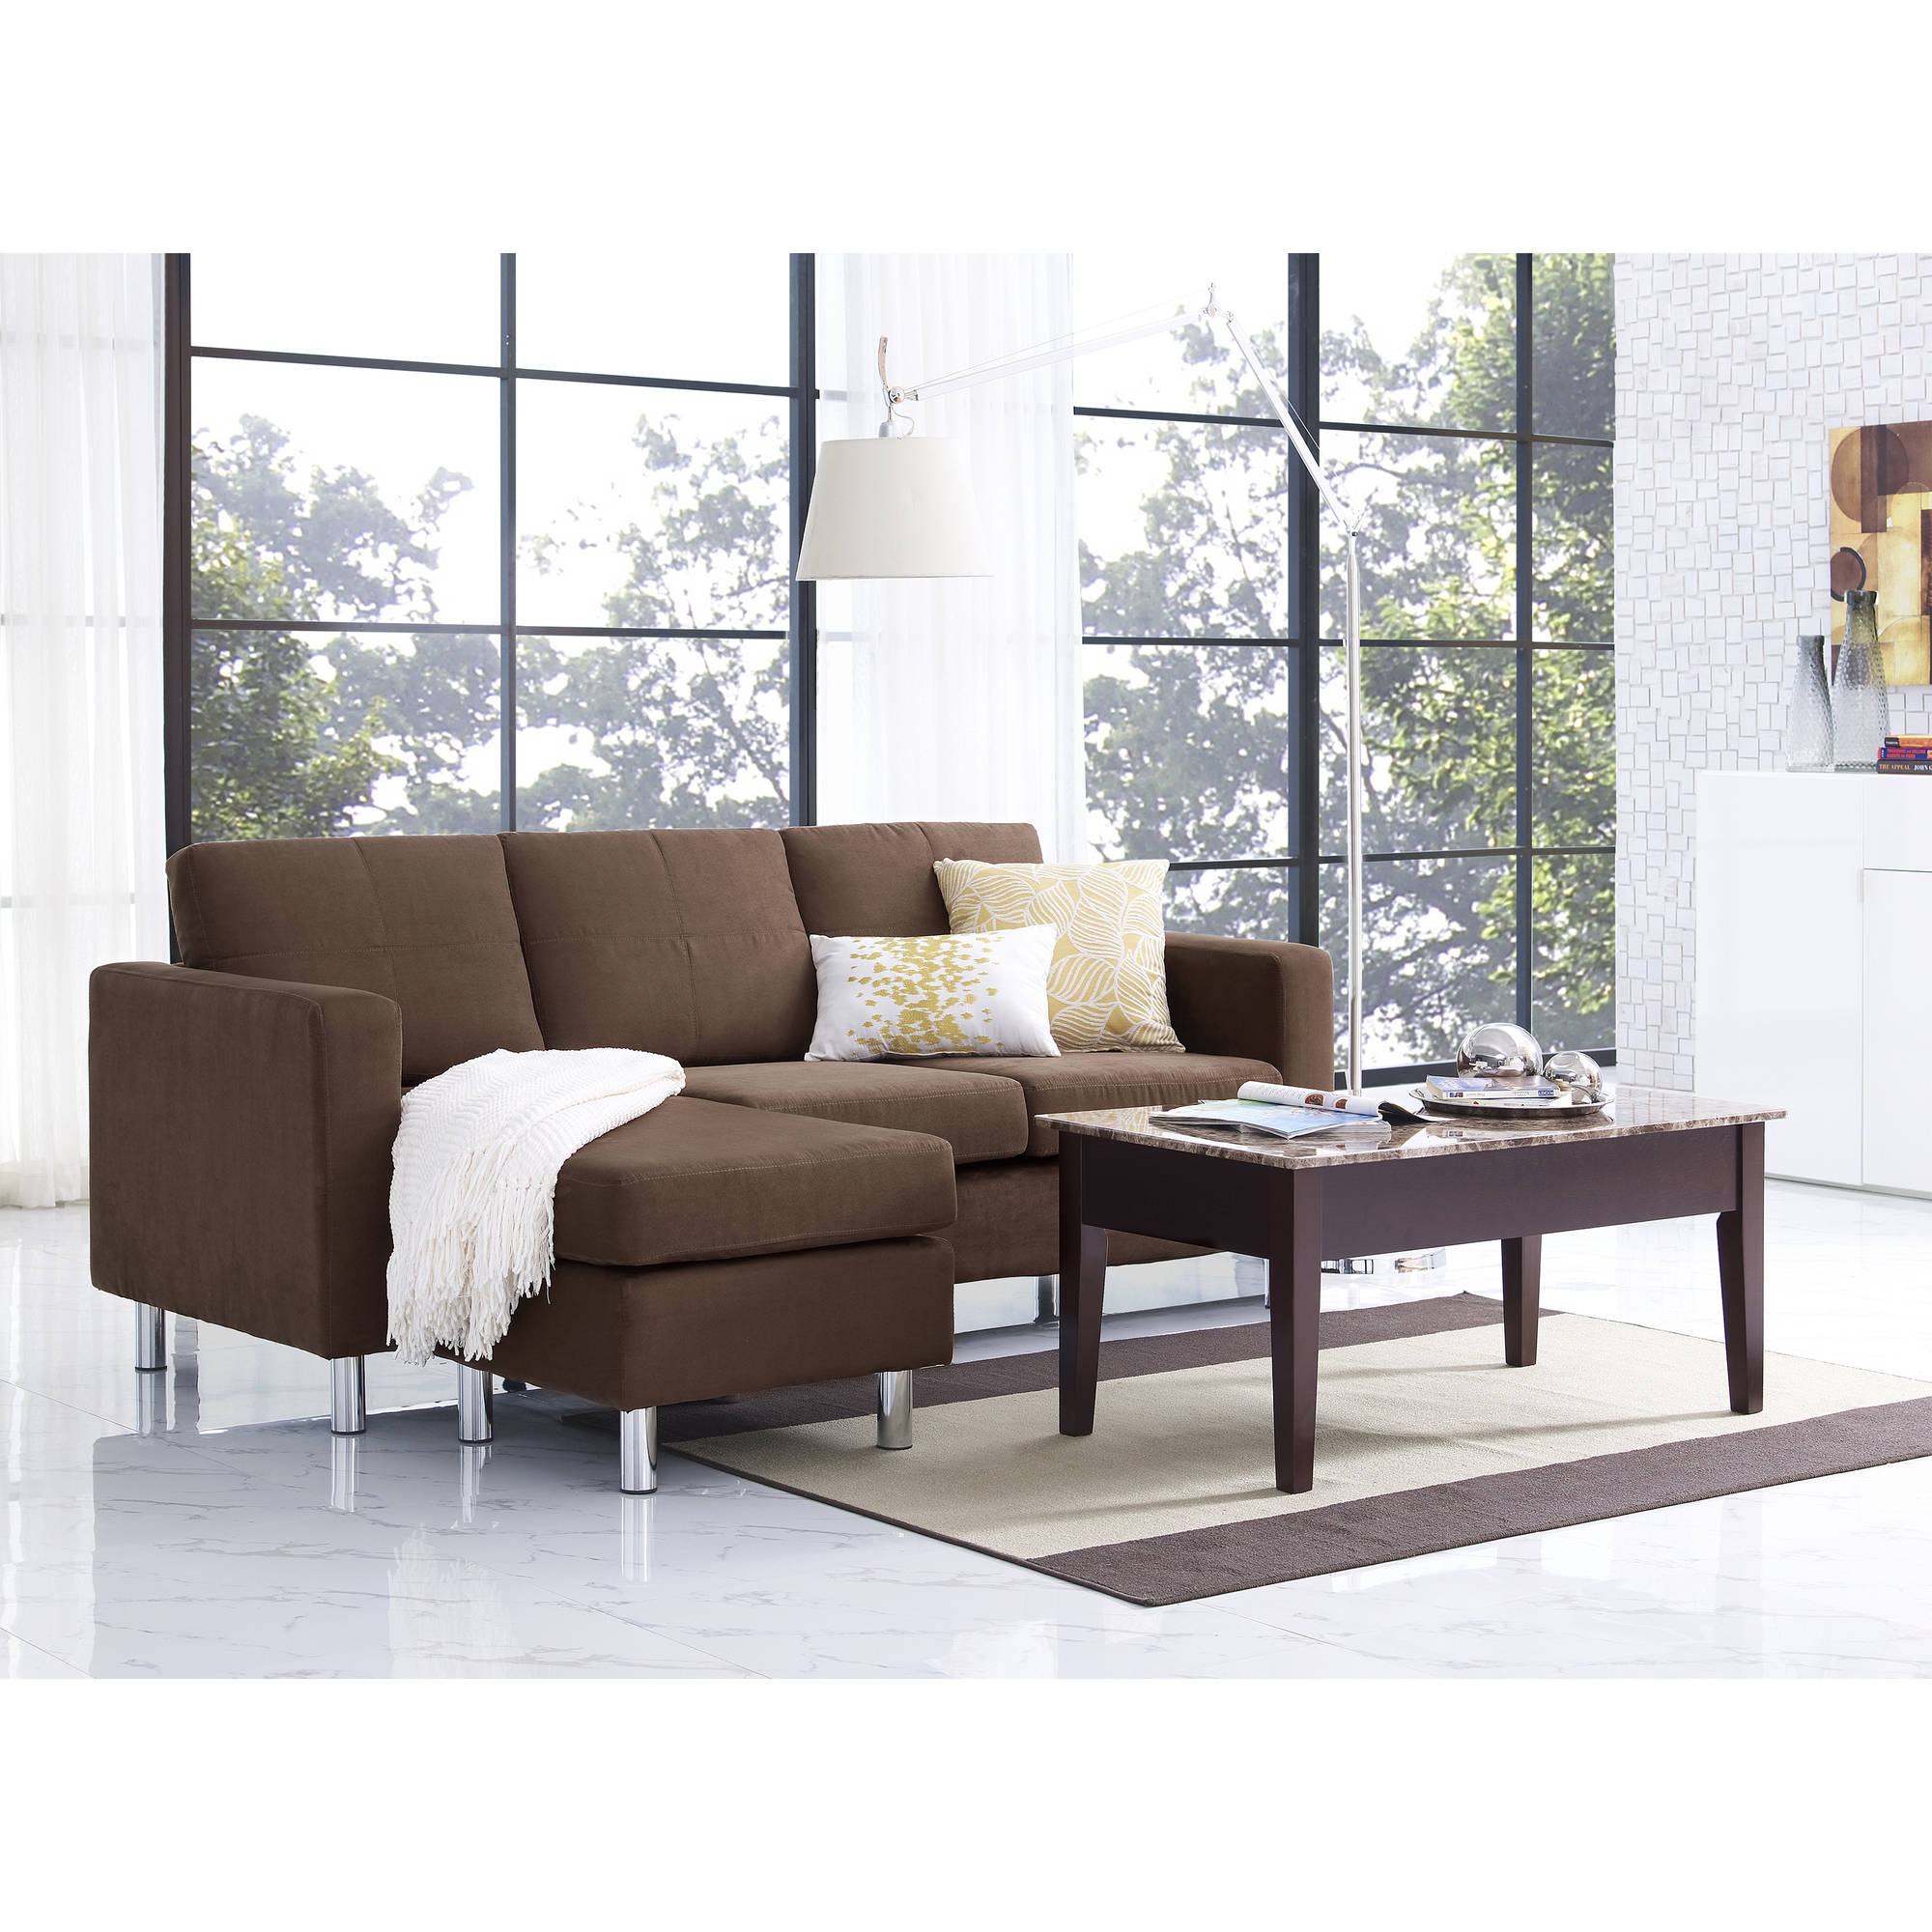 Dorel Living Small Spaces Configurable Sectional Sofa, Multiple Colors    Walmart.com